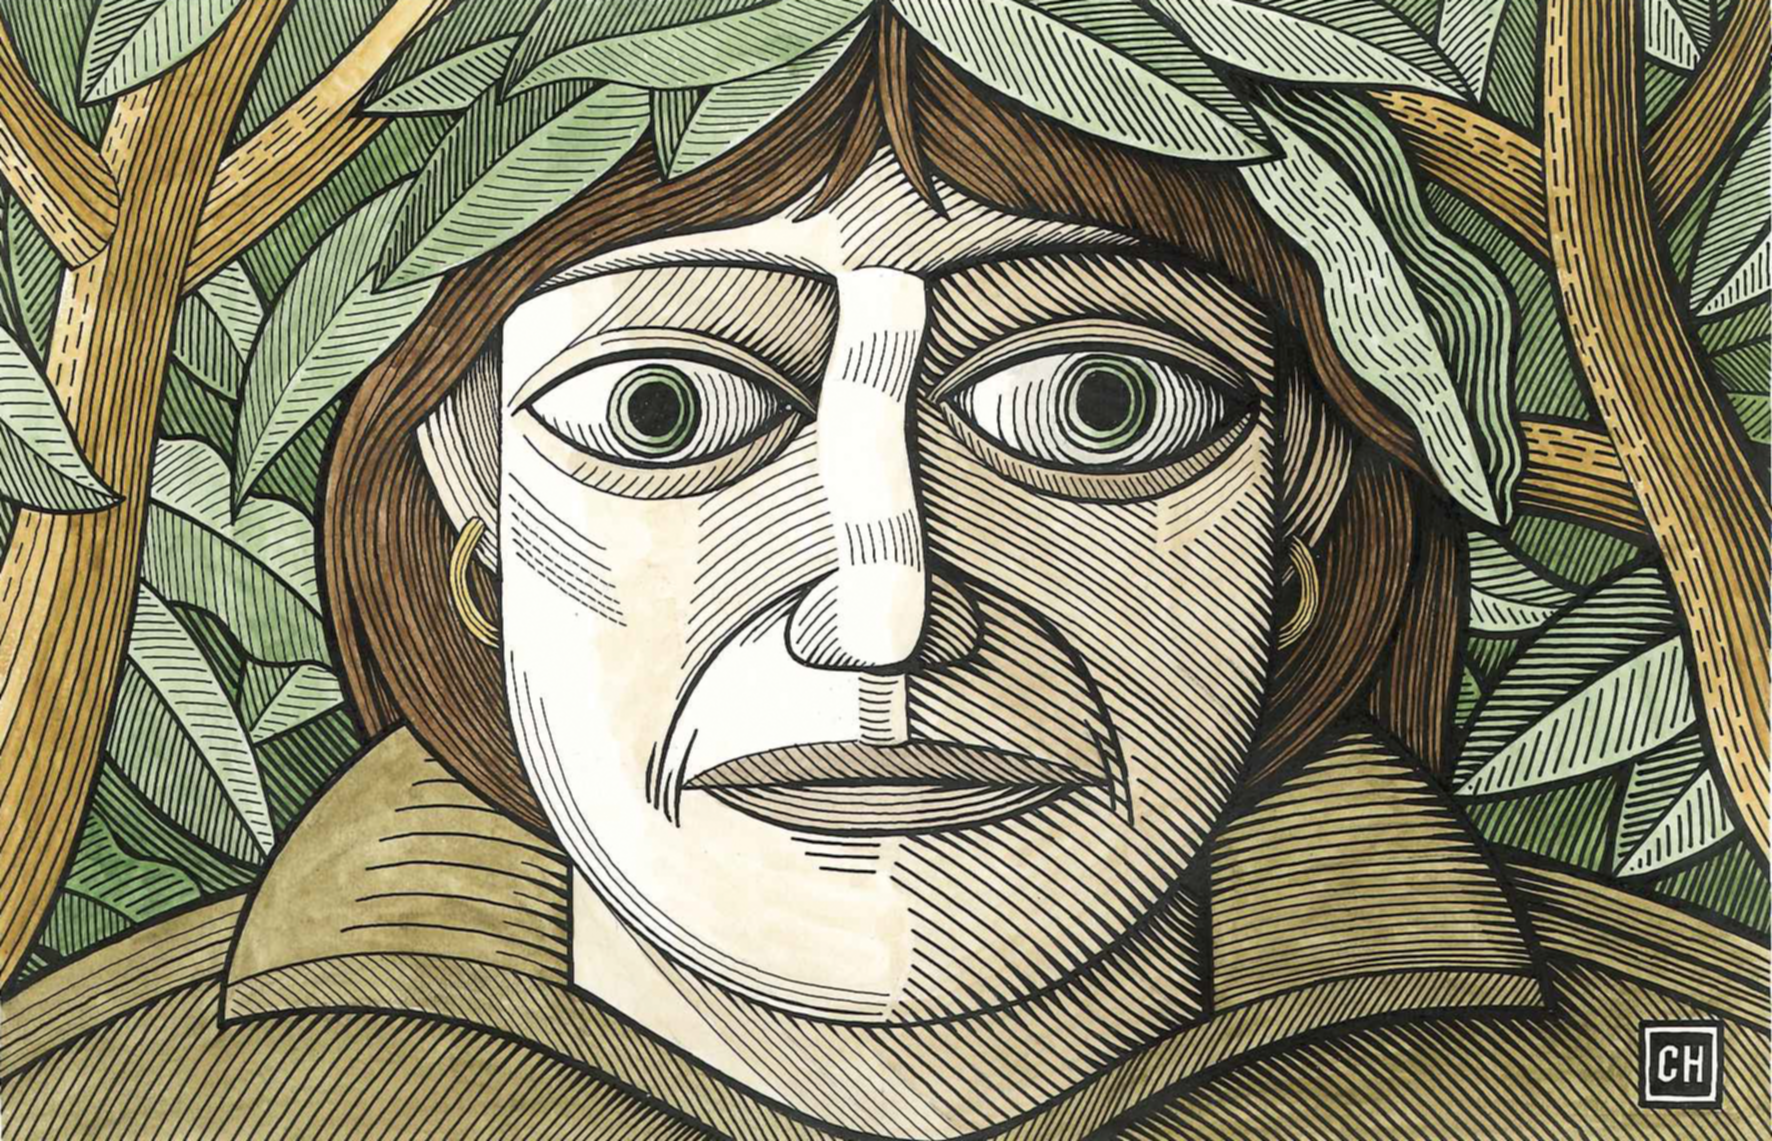 What the Green Man can teach us about our place in the world